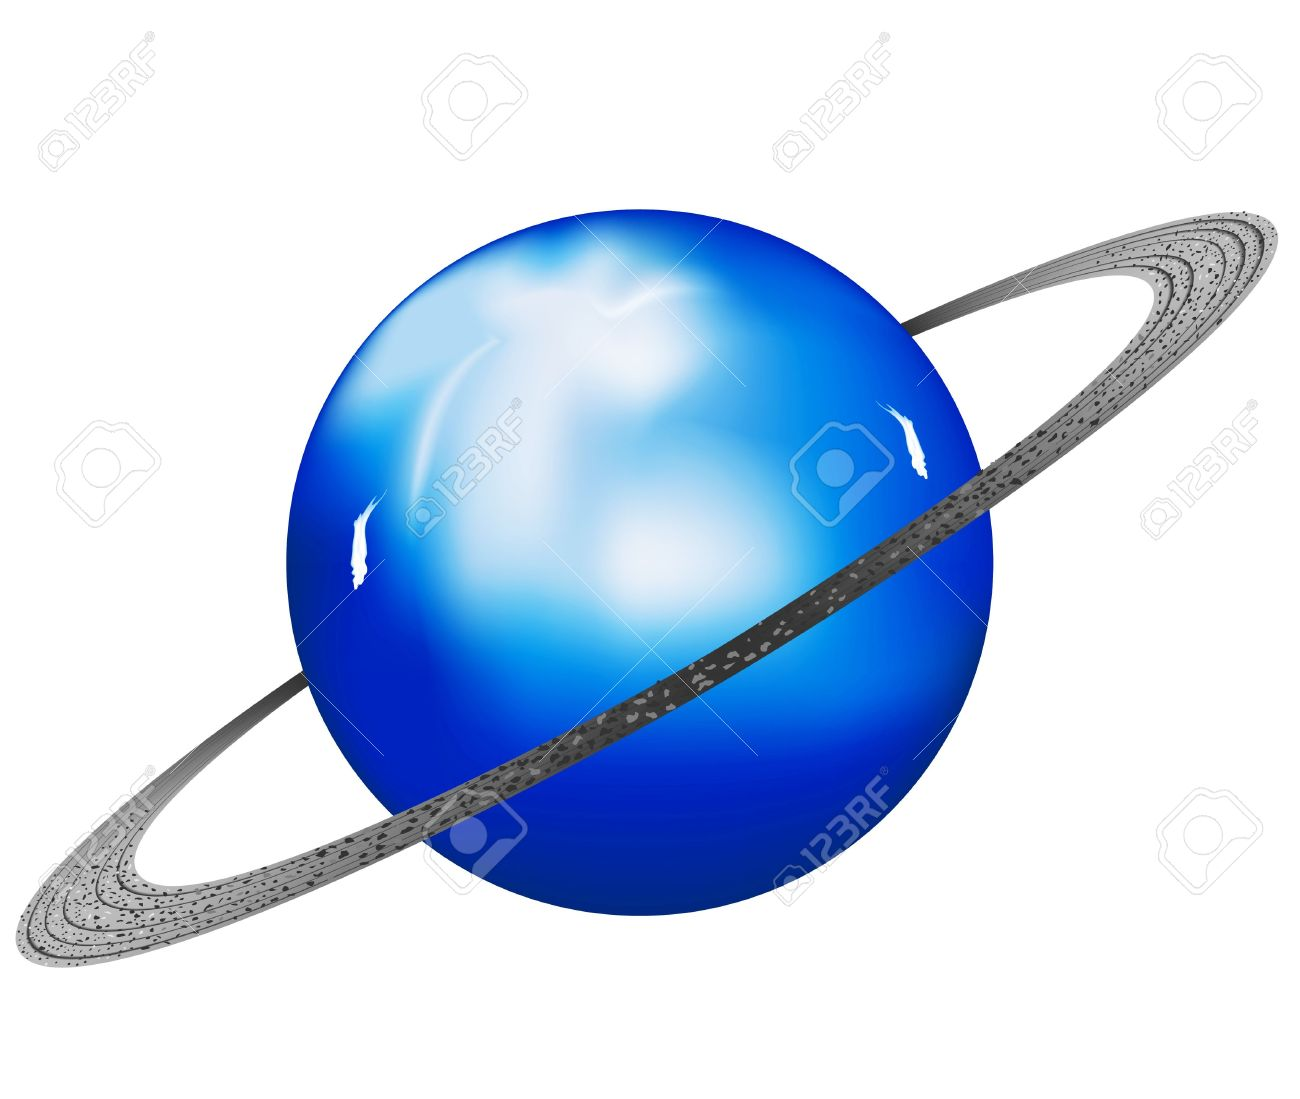 Clipart Of Uranus-Clipart Of Uranus-1